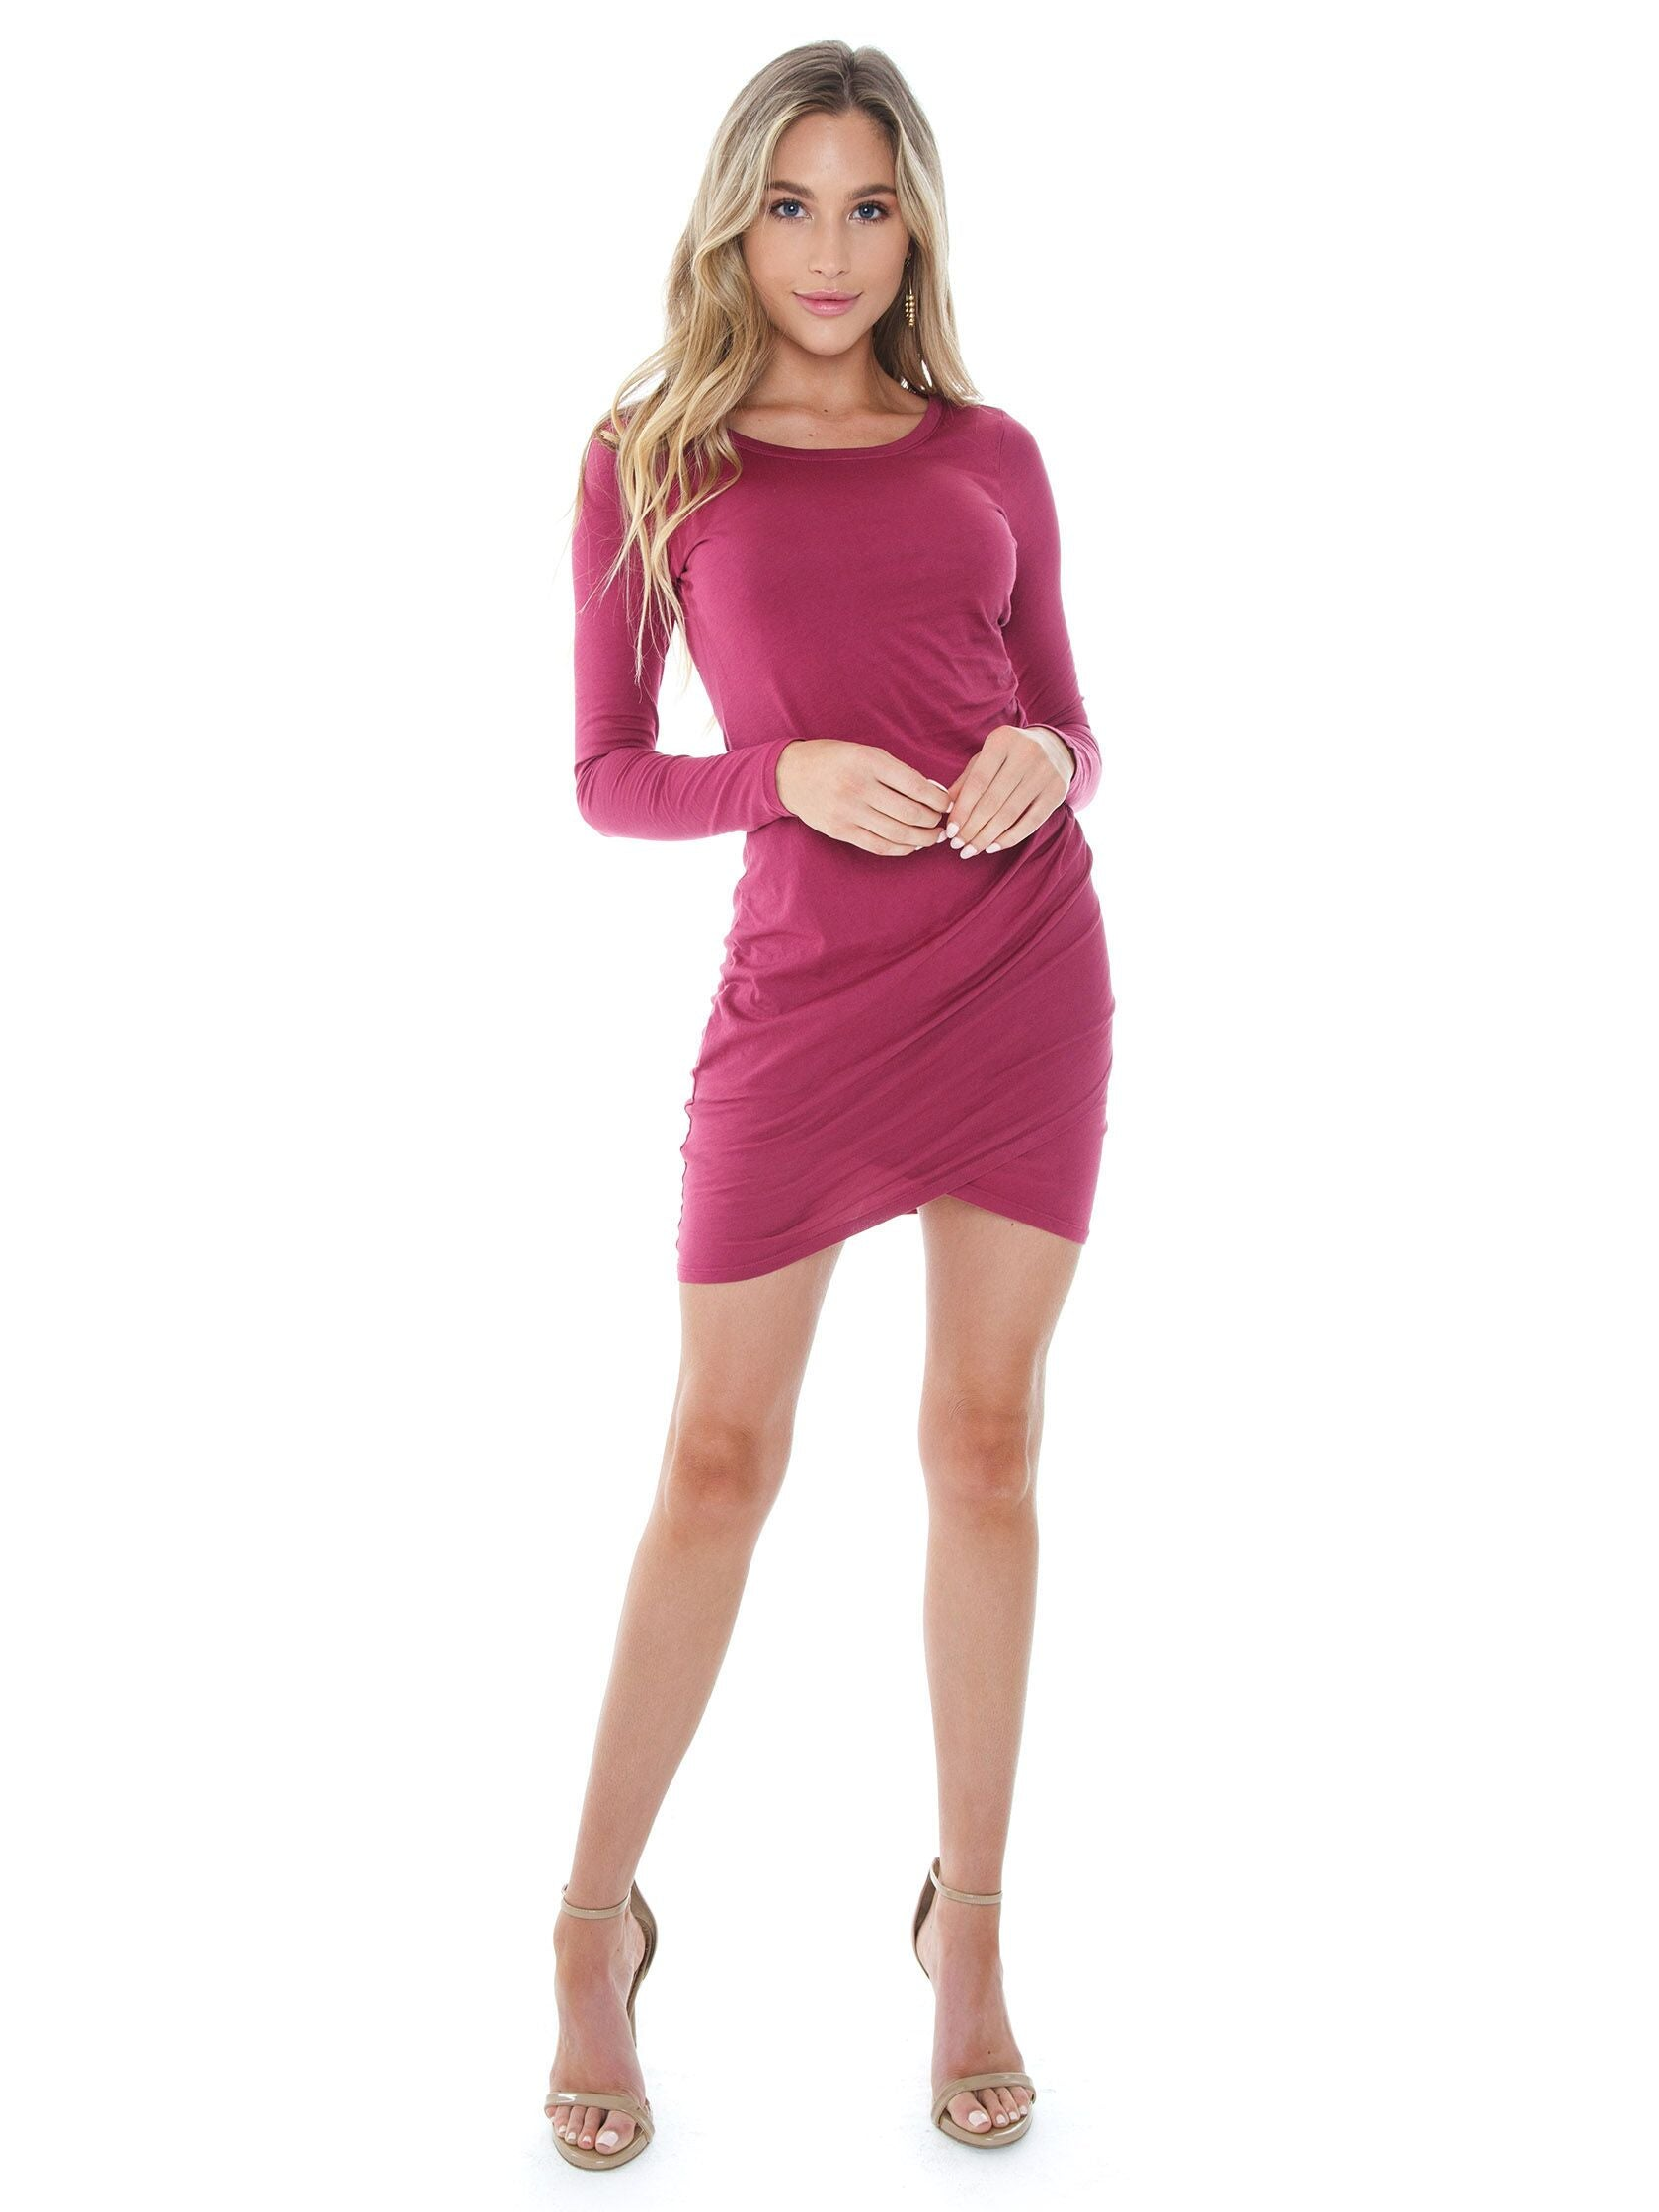 Girl outfit in a dress rental from Bobi called Ruched Side Dress